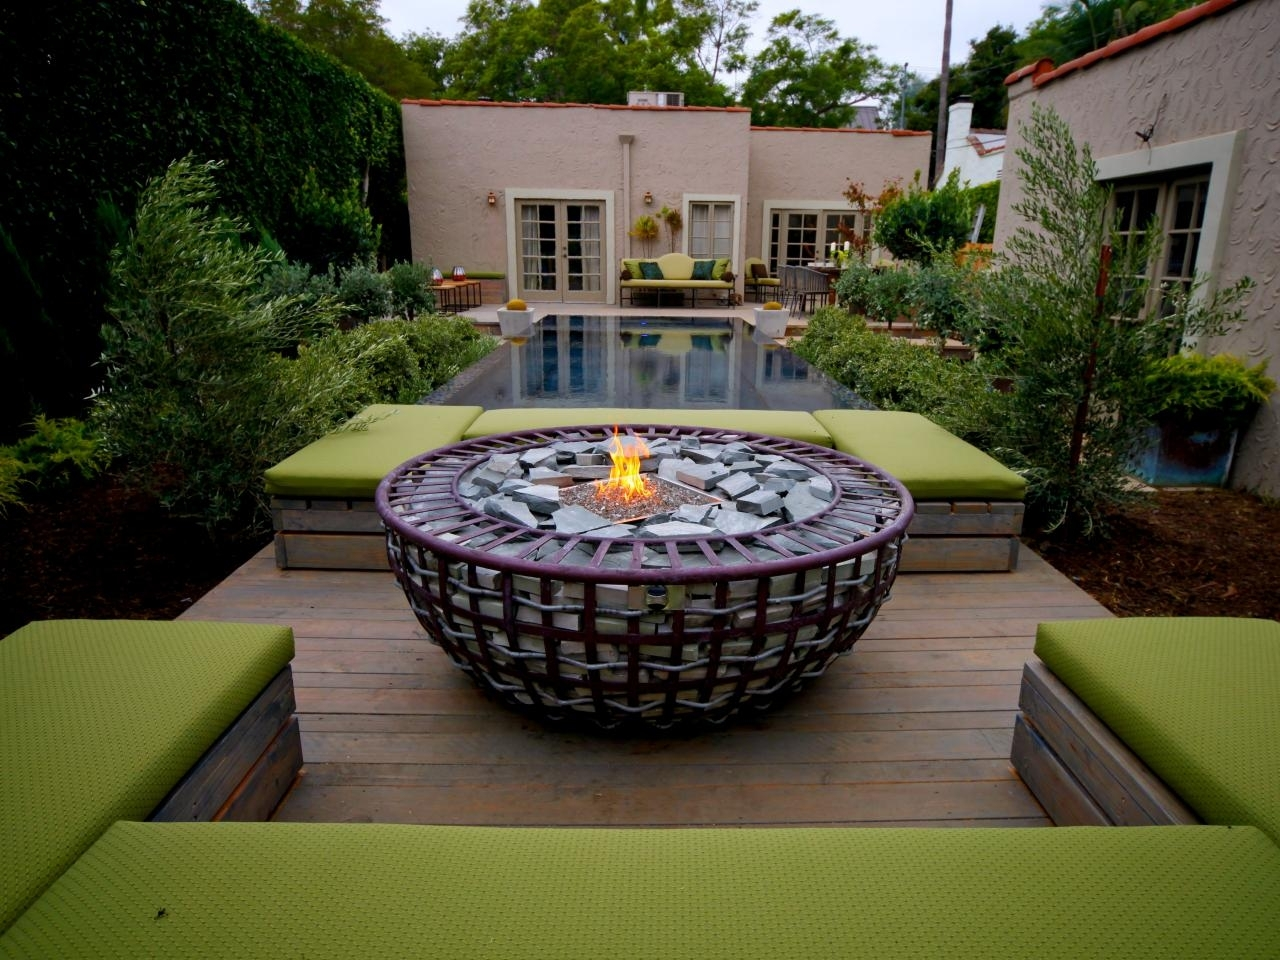 Image of: 66 Fire Pit And Outdoor Fireplace Ideas Diy Network Blog Made Pertaining To Unique Outdoor Fireplaces Grill Diy Unique Outdoor Fireplaces Grill